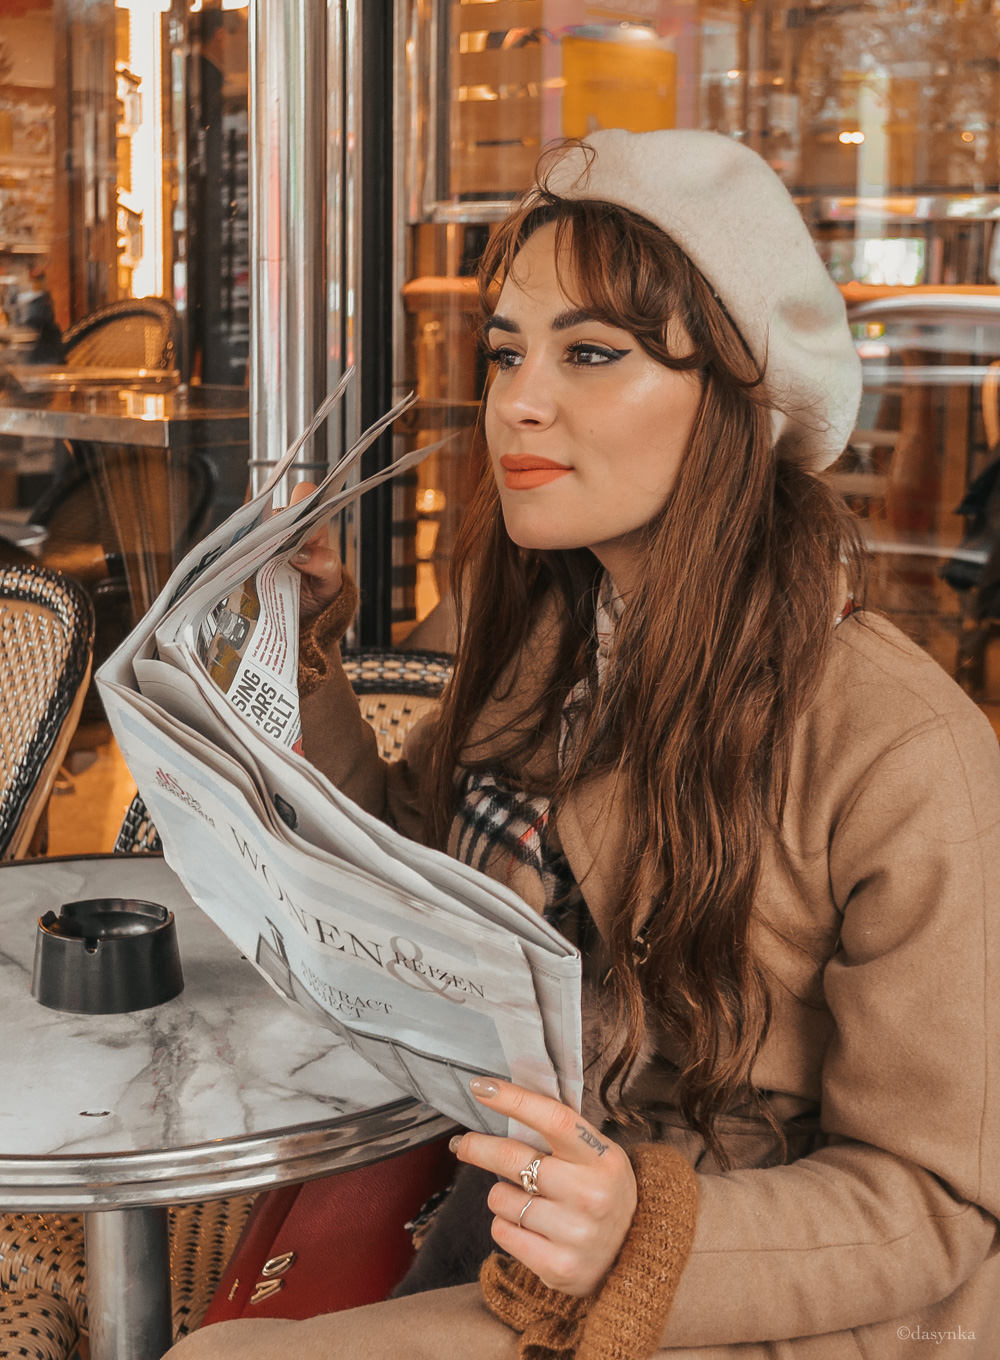 dasynka-fashion-blog-blogger-influencer-inspo-inspiration-shooting-model-globettrotter-travel-girl-lookbook-instagram-instagrammer-long-hair-street-style-casual-italy-lifestyle-outfit-poses-look-ootd-ideas-elegant-italian-paris-coat-camel-burberry-hat-basque-browne-boots-black-shirt-bow-sweater-cozy-parisien-parisienne-parisian-neutral-beige-white-scarf-france-tour-eiffel-cafe-newspaper